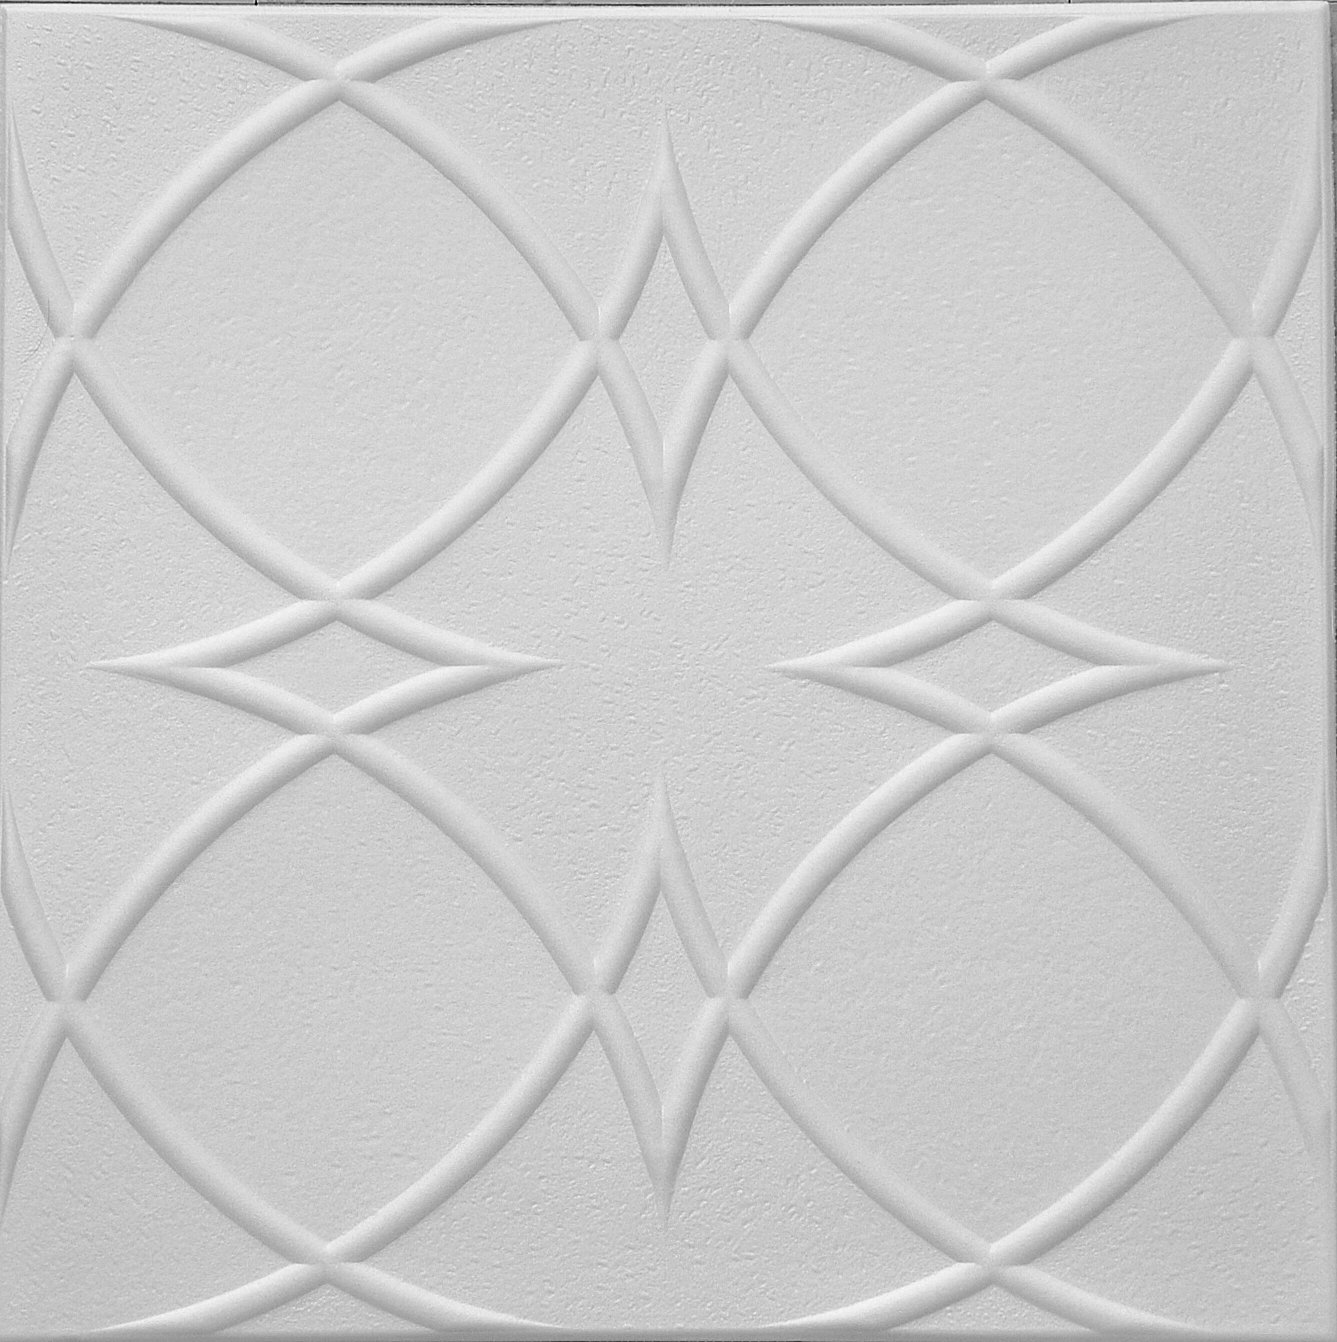 Easy to install RM-82 Polystyrene (Styrofoam) ceiling tile to cover popcorn (Pack of 8 plain white tiles). DIY glue up application on on most flat ceiling surfaces or over popcorn. Circles & Stars Design. TRM